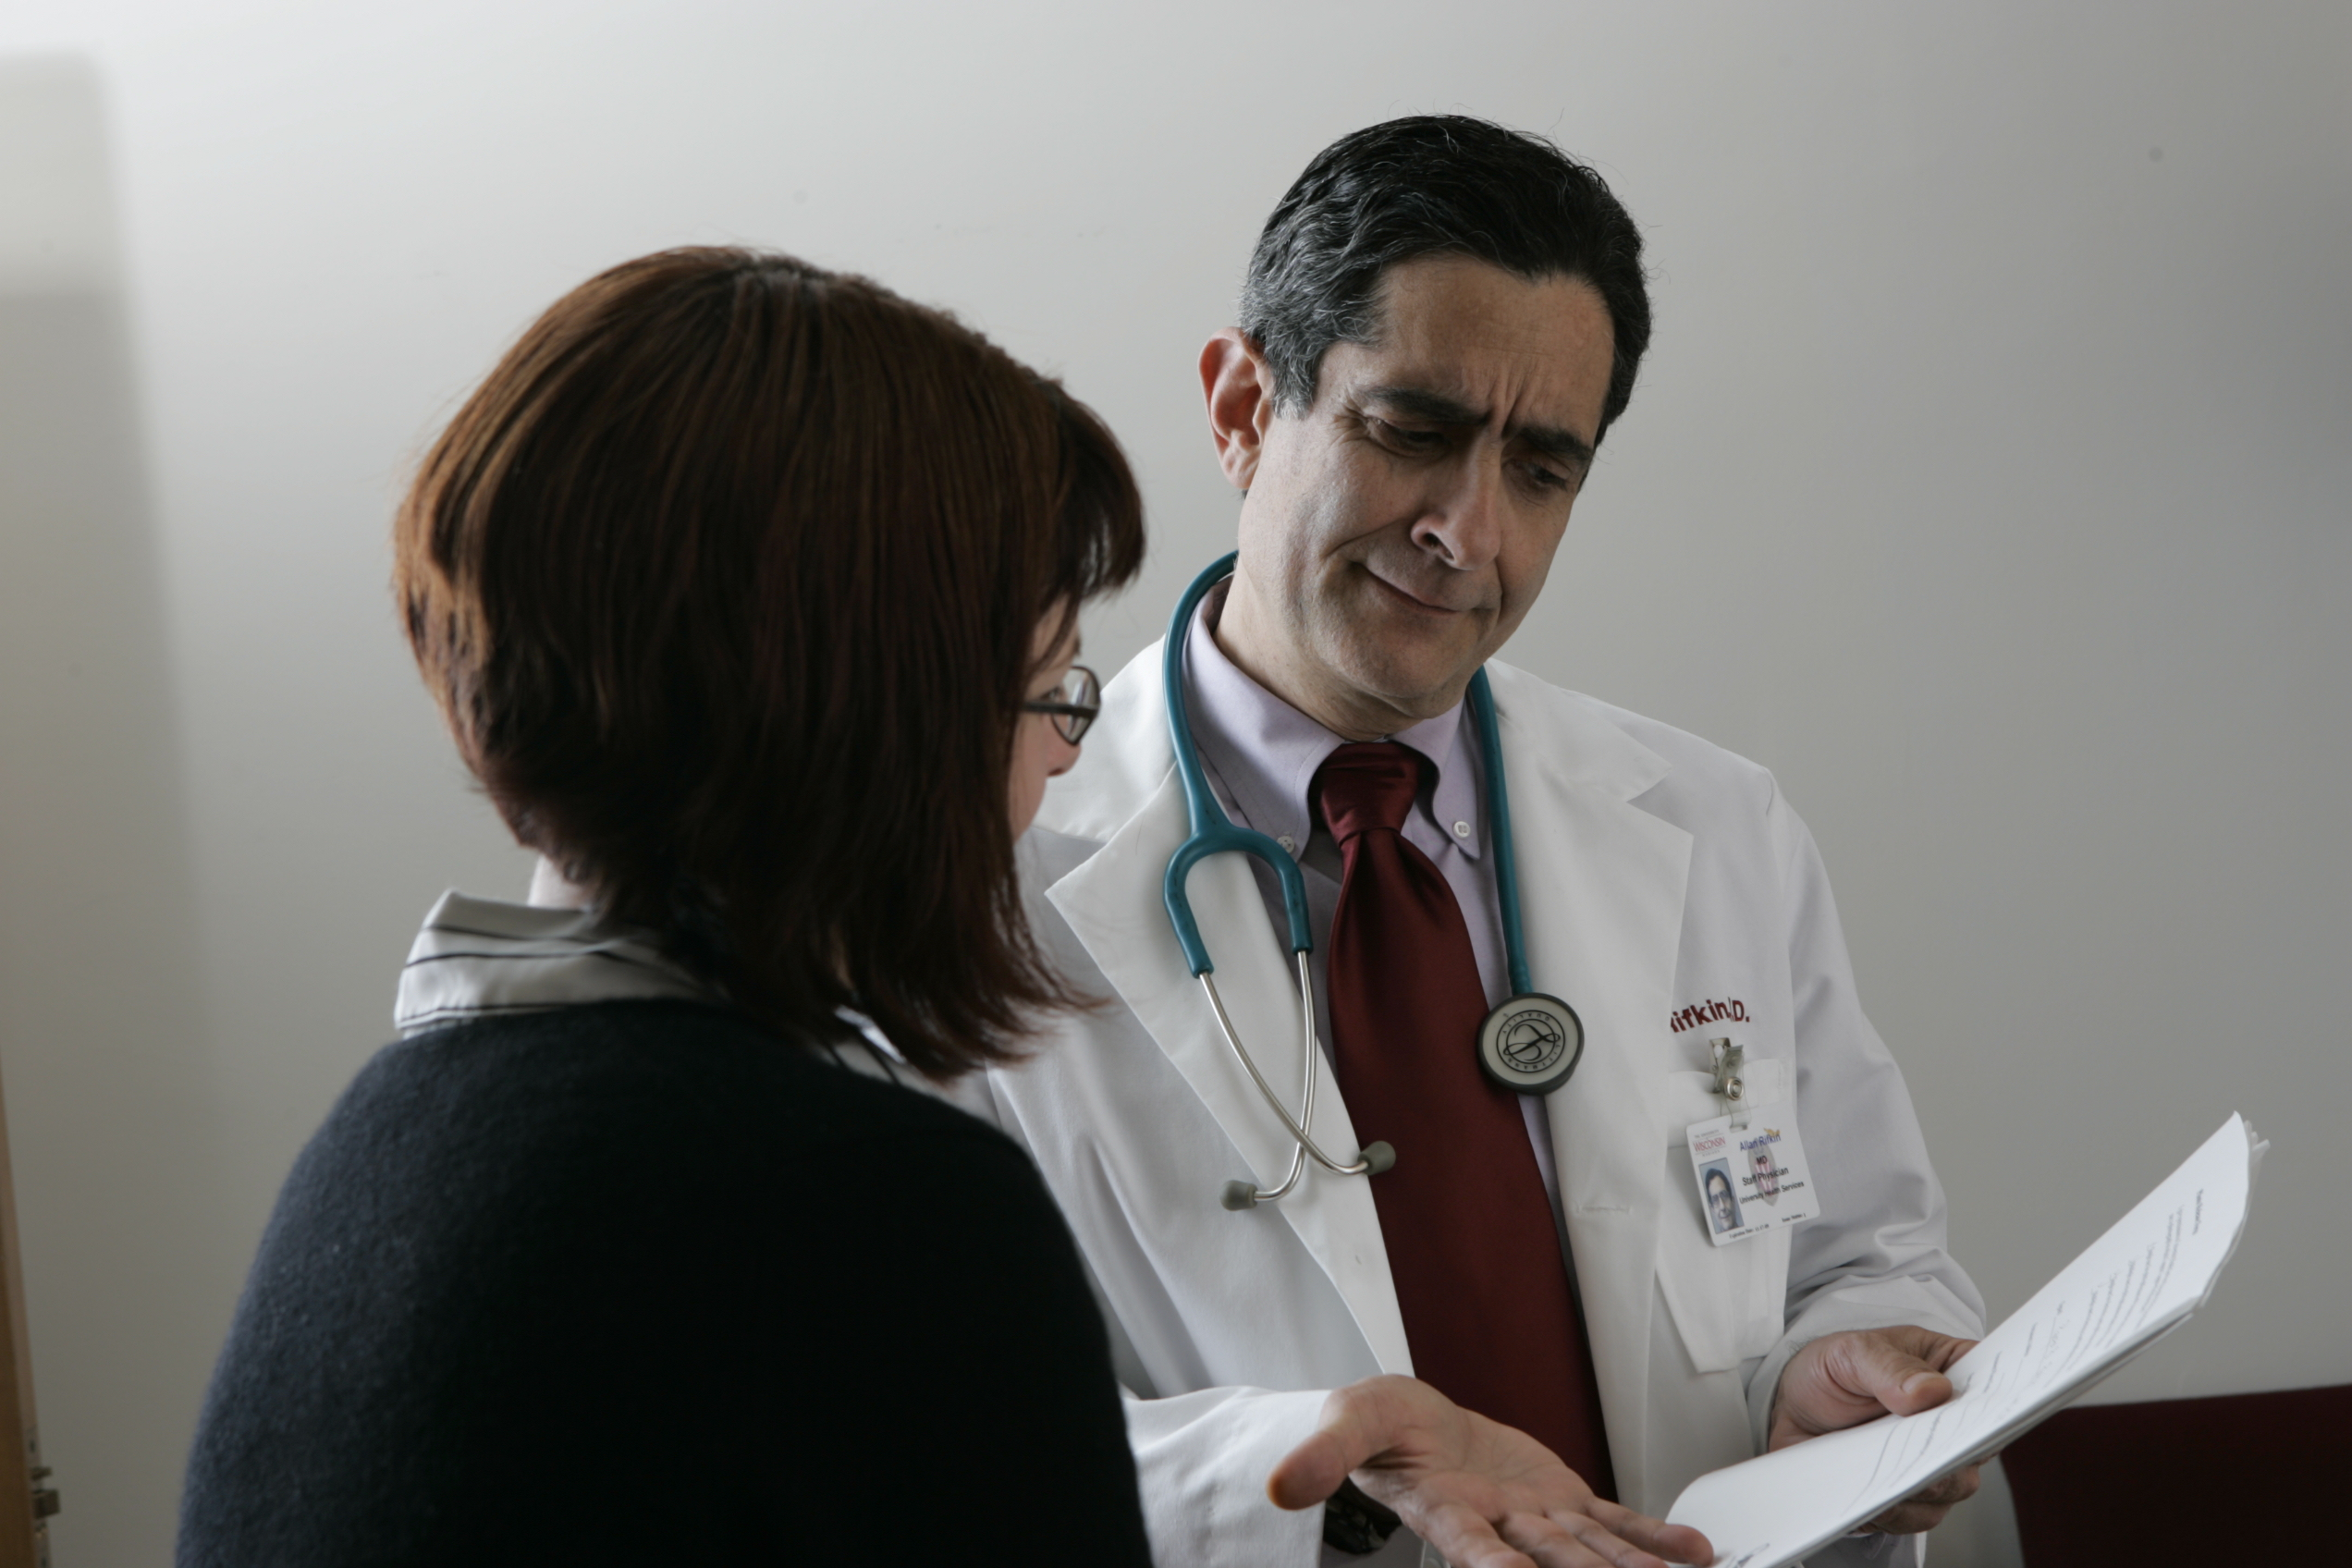 Image of a doctor speaking with a patient.